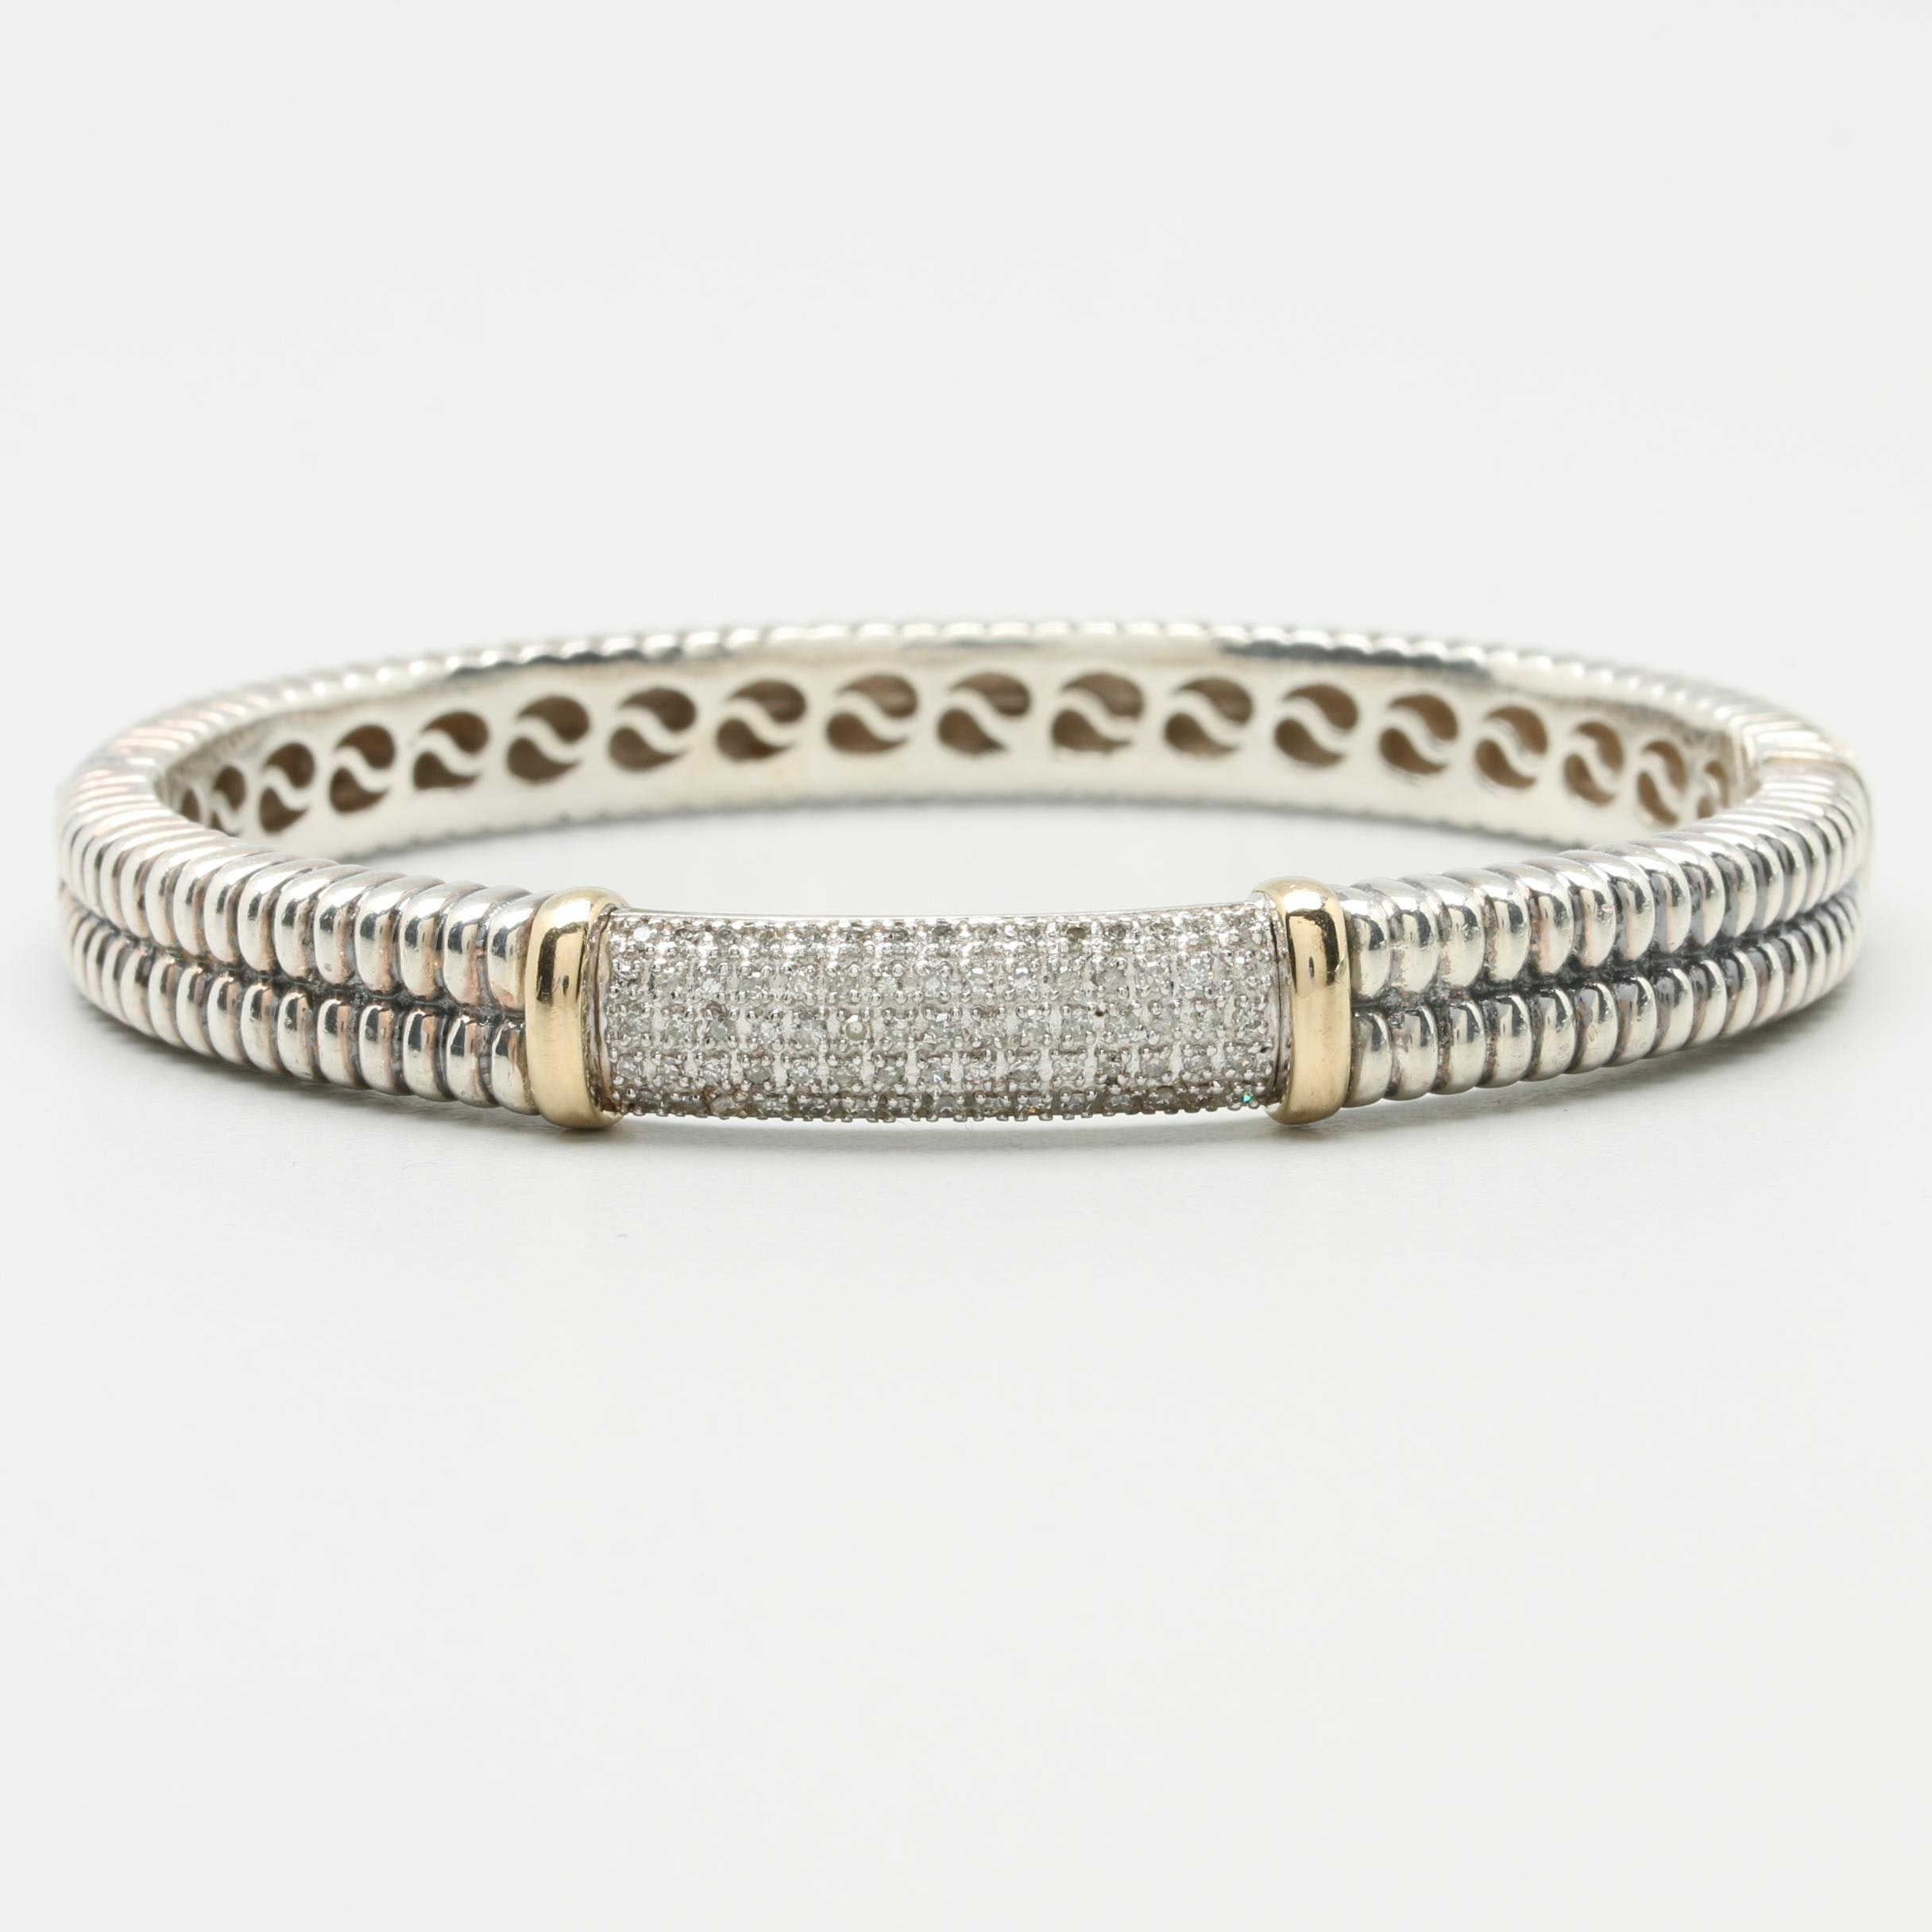 Sterling Silver Diamond Bangle Bracelet with 14K Yellow Gold Accents